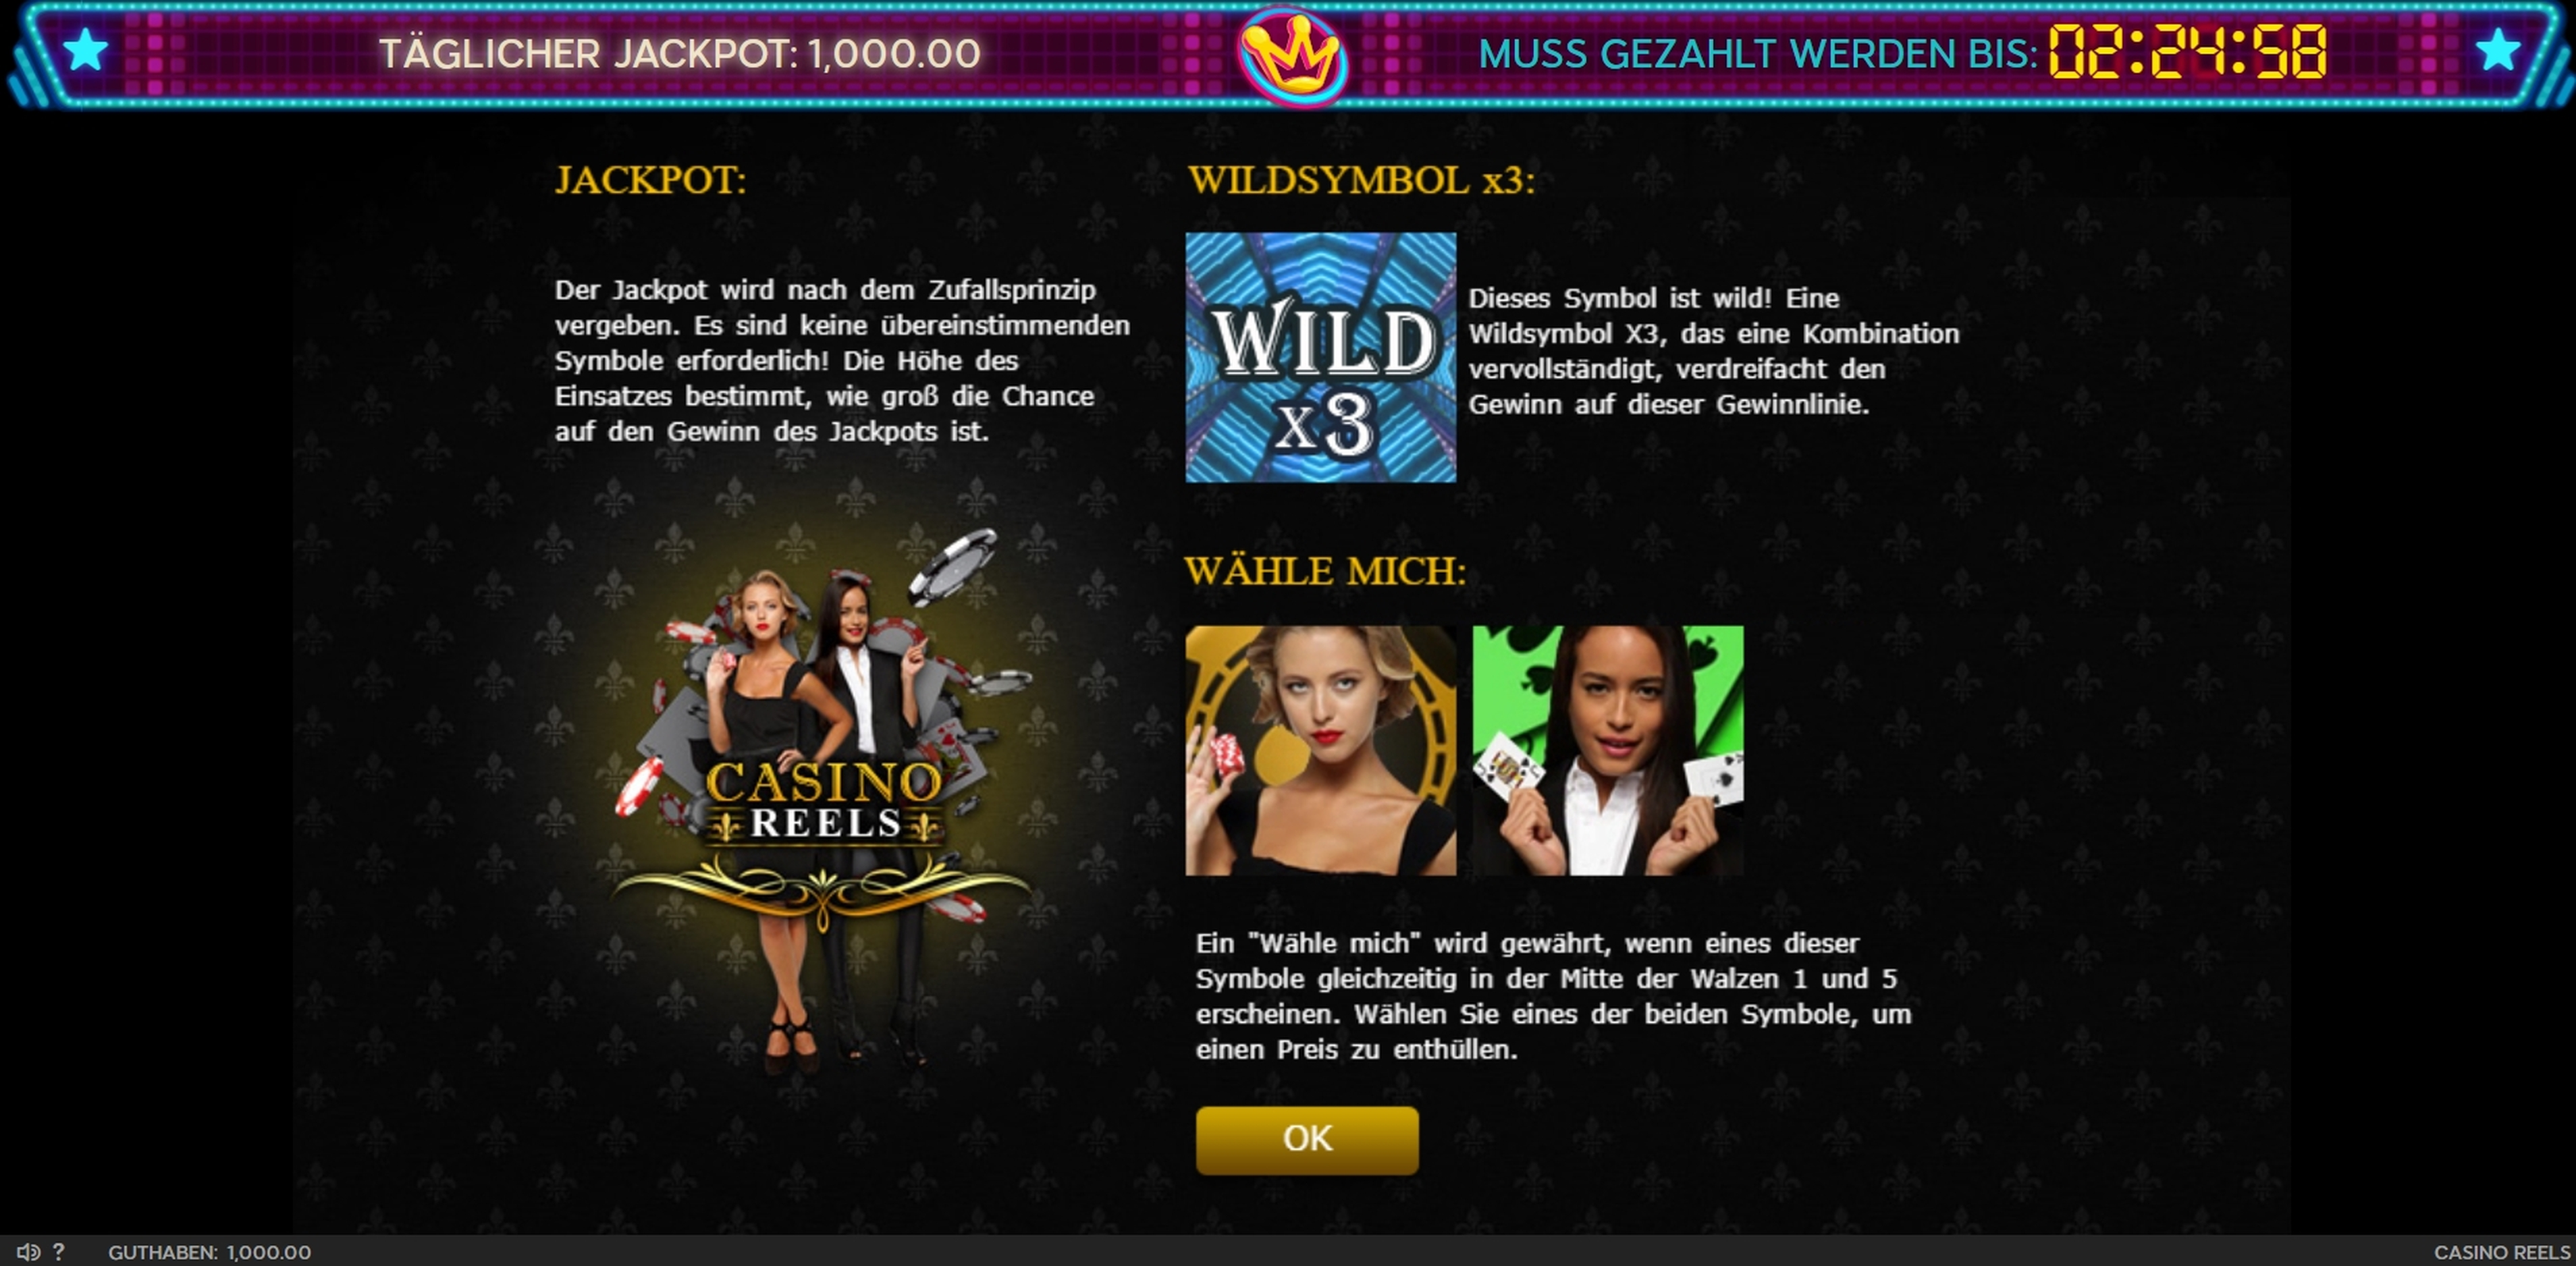 Play Casino Reels Free Casino Slot Game by 888 Gaming